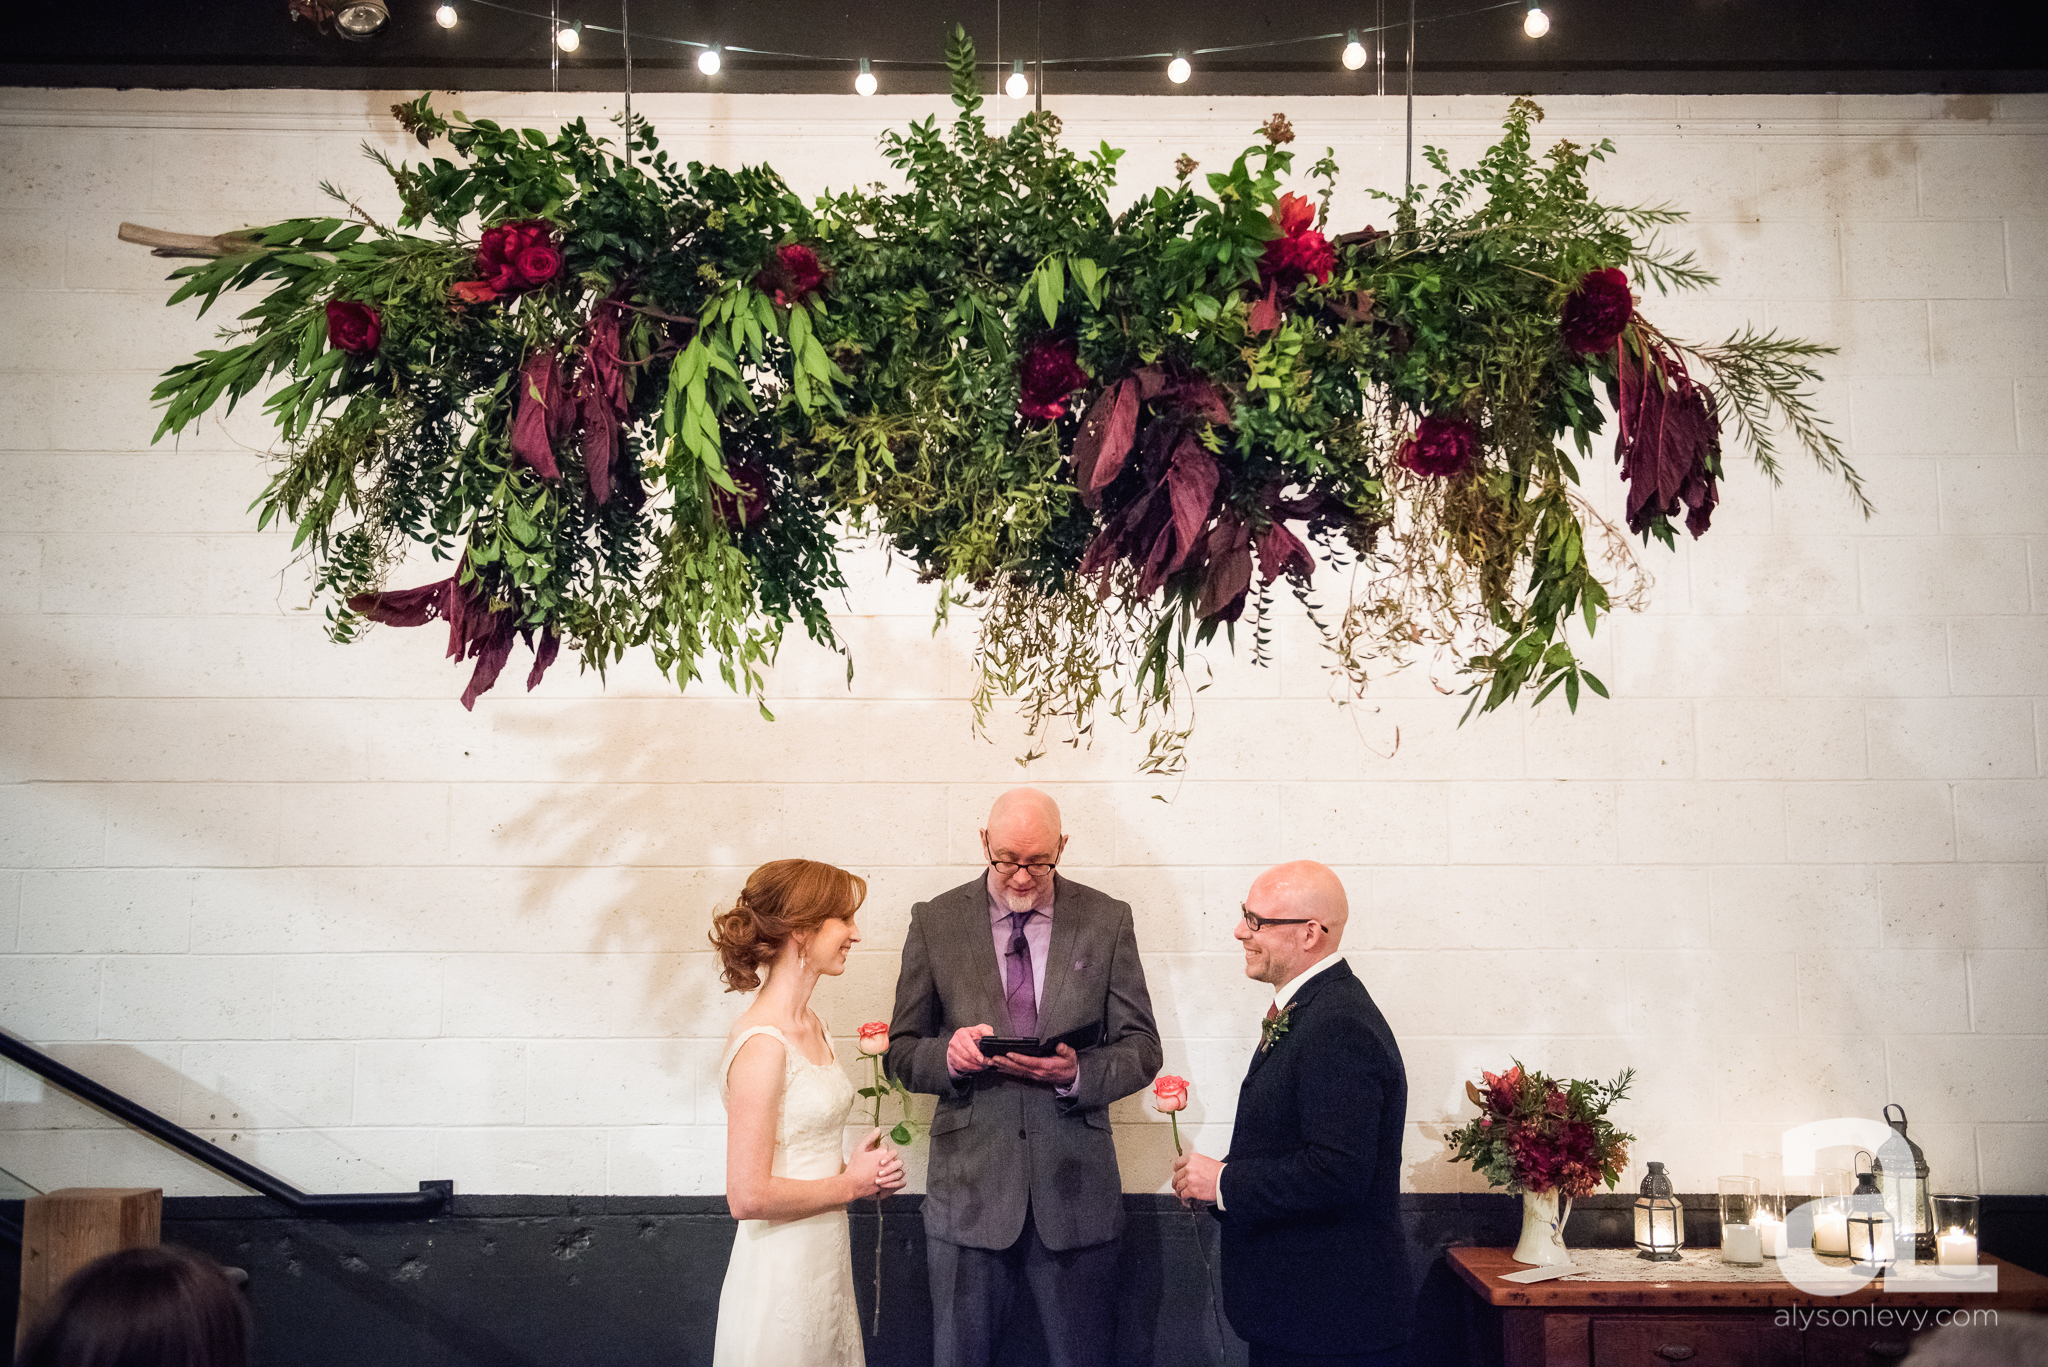 portland-wedding-venue.jpg